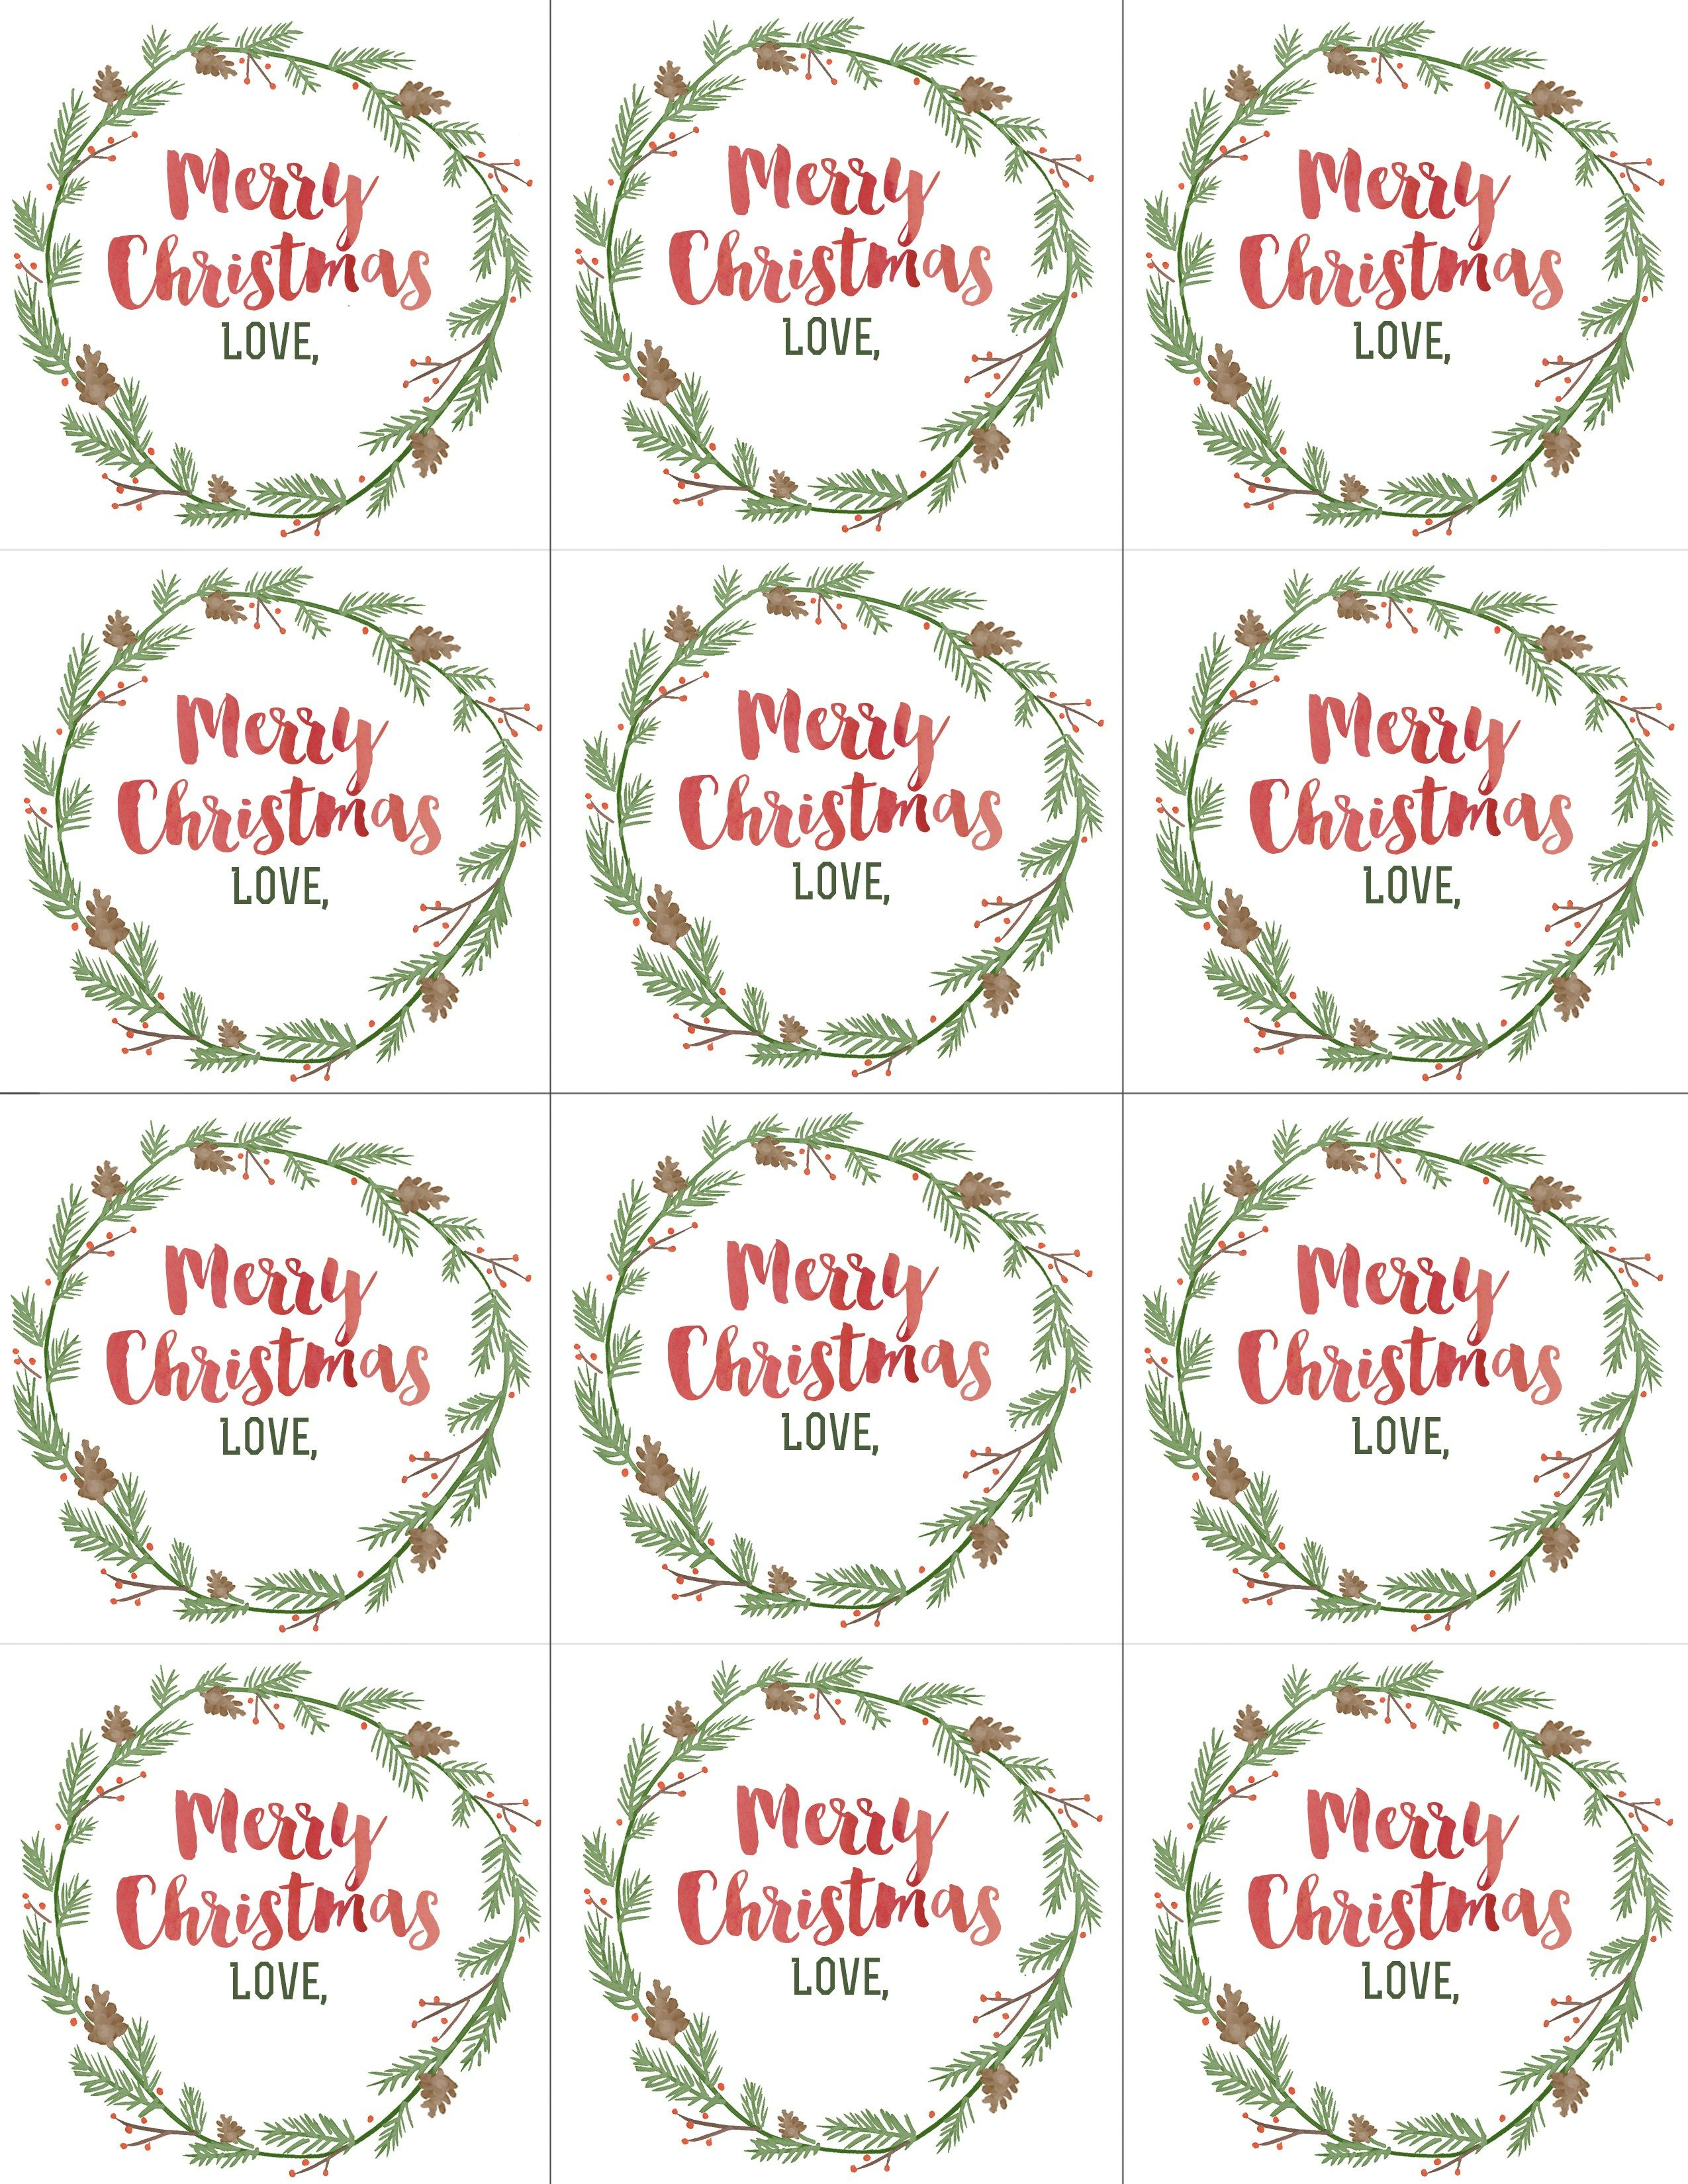 Hand Painted Gift Tags Free Printable | Gift Wrap | Christmas Gift - Diy Gift Tags Free Printable